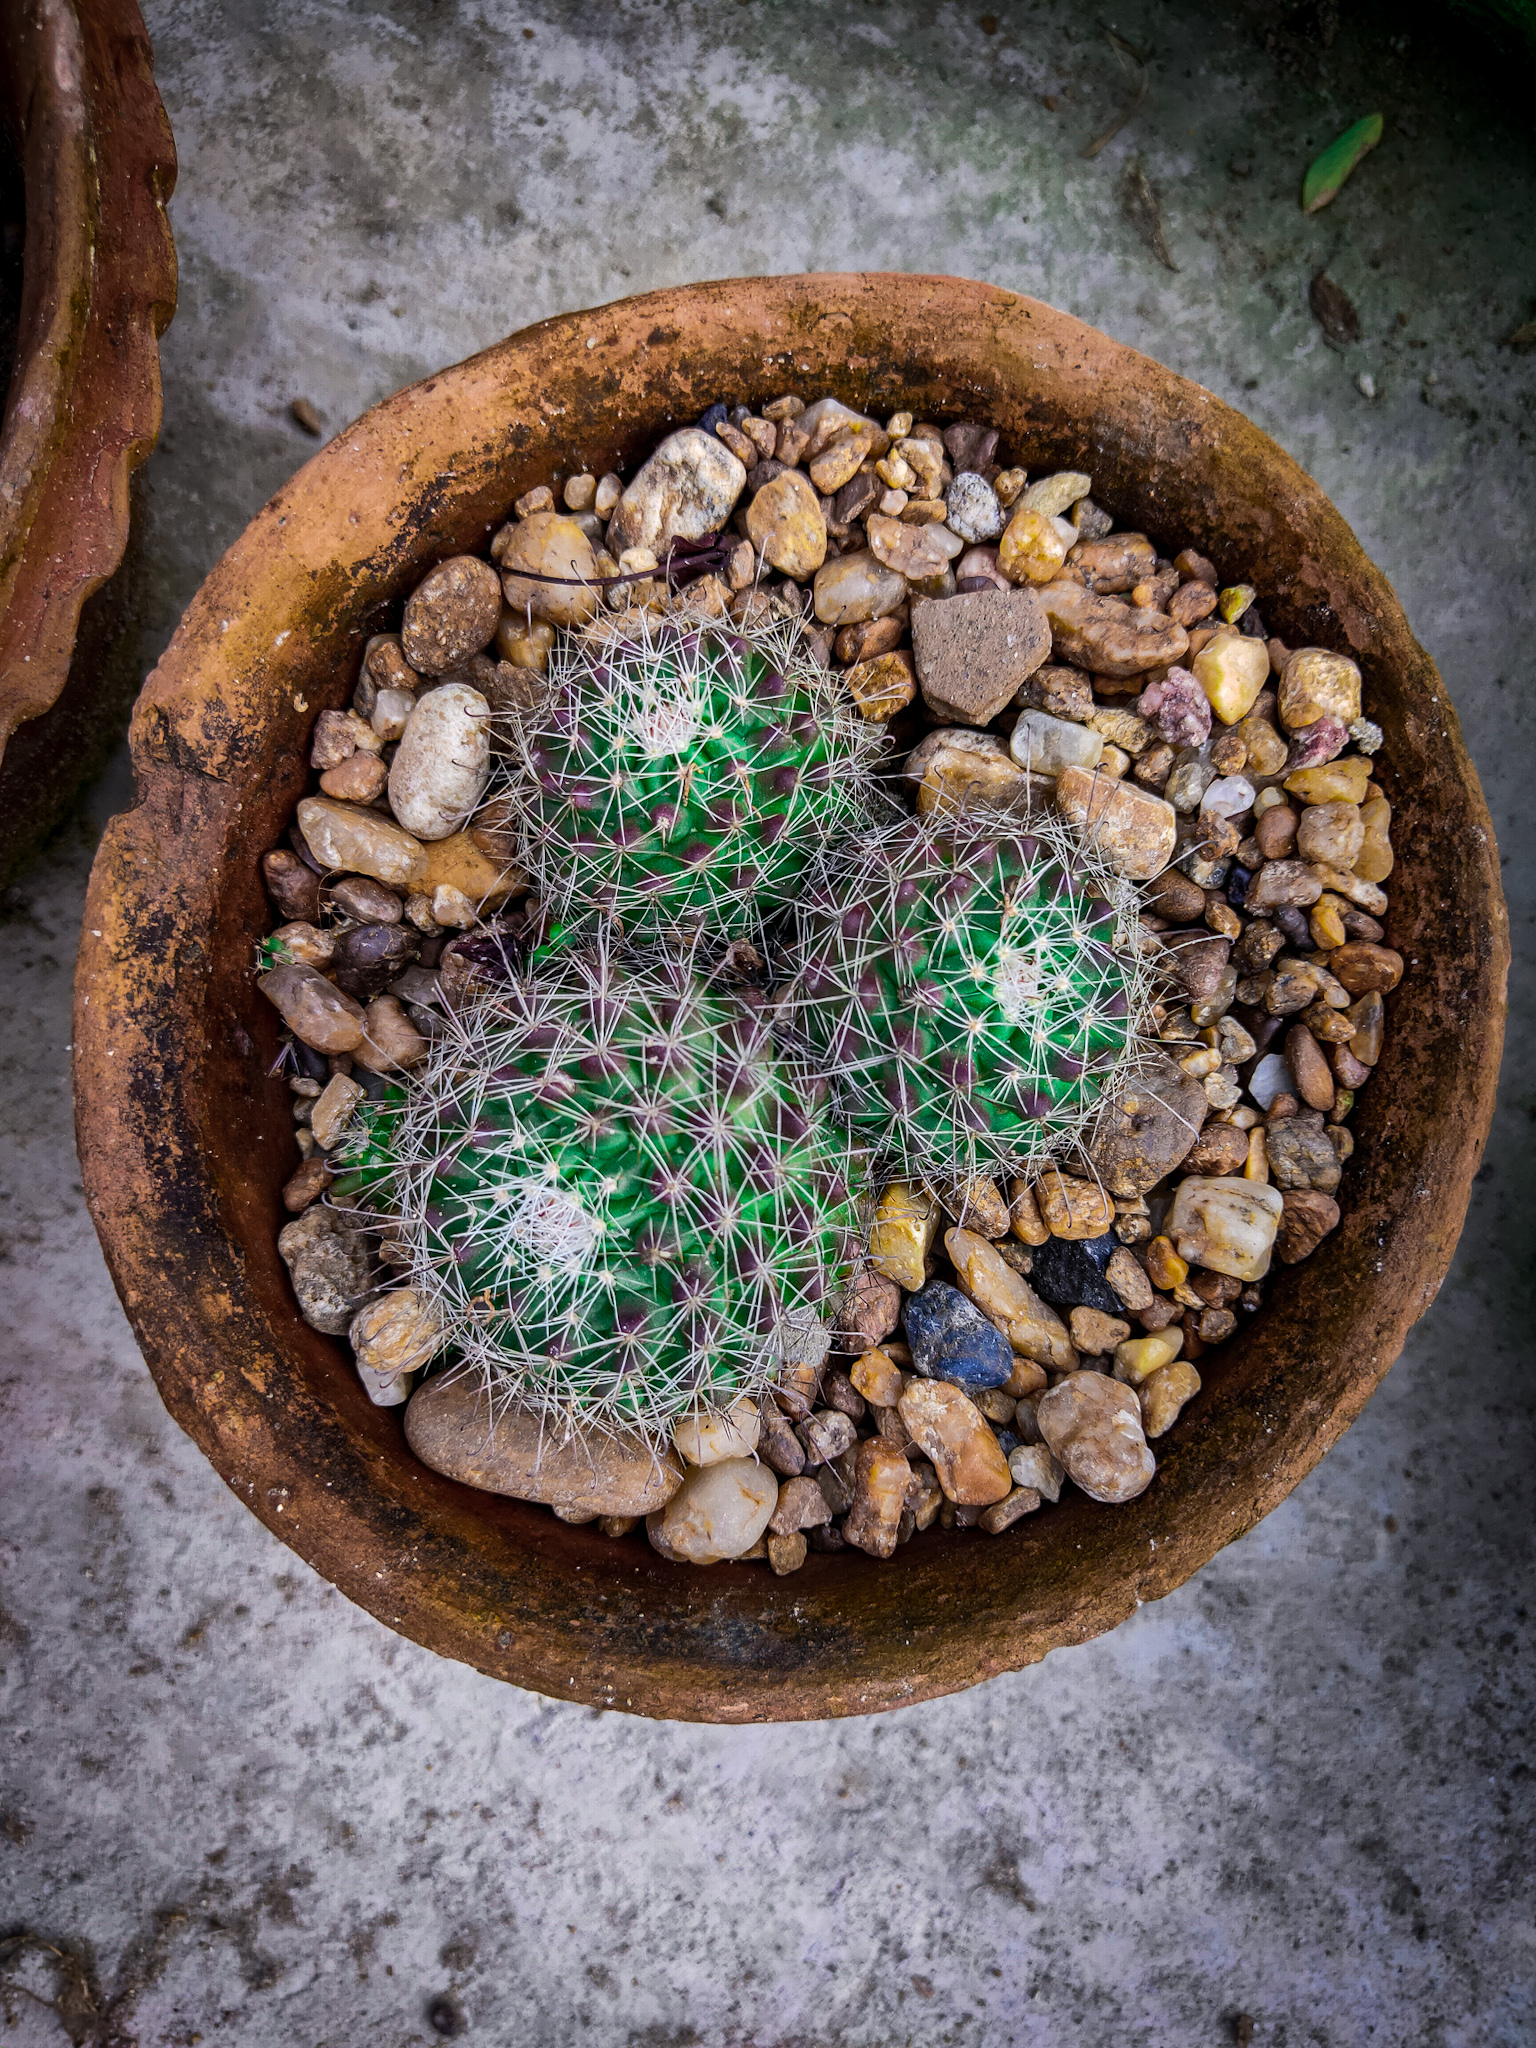 A small Cactus plants in pot